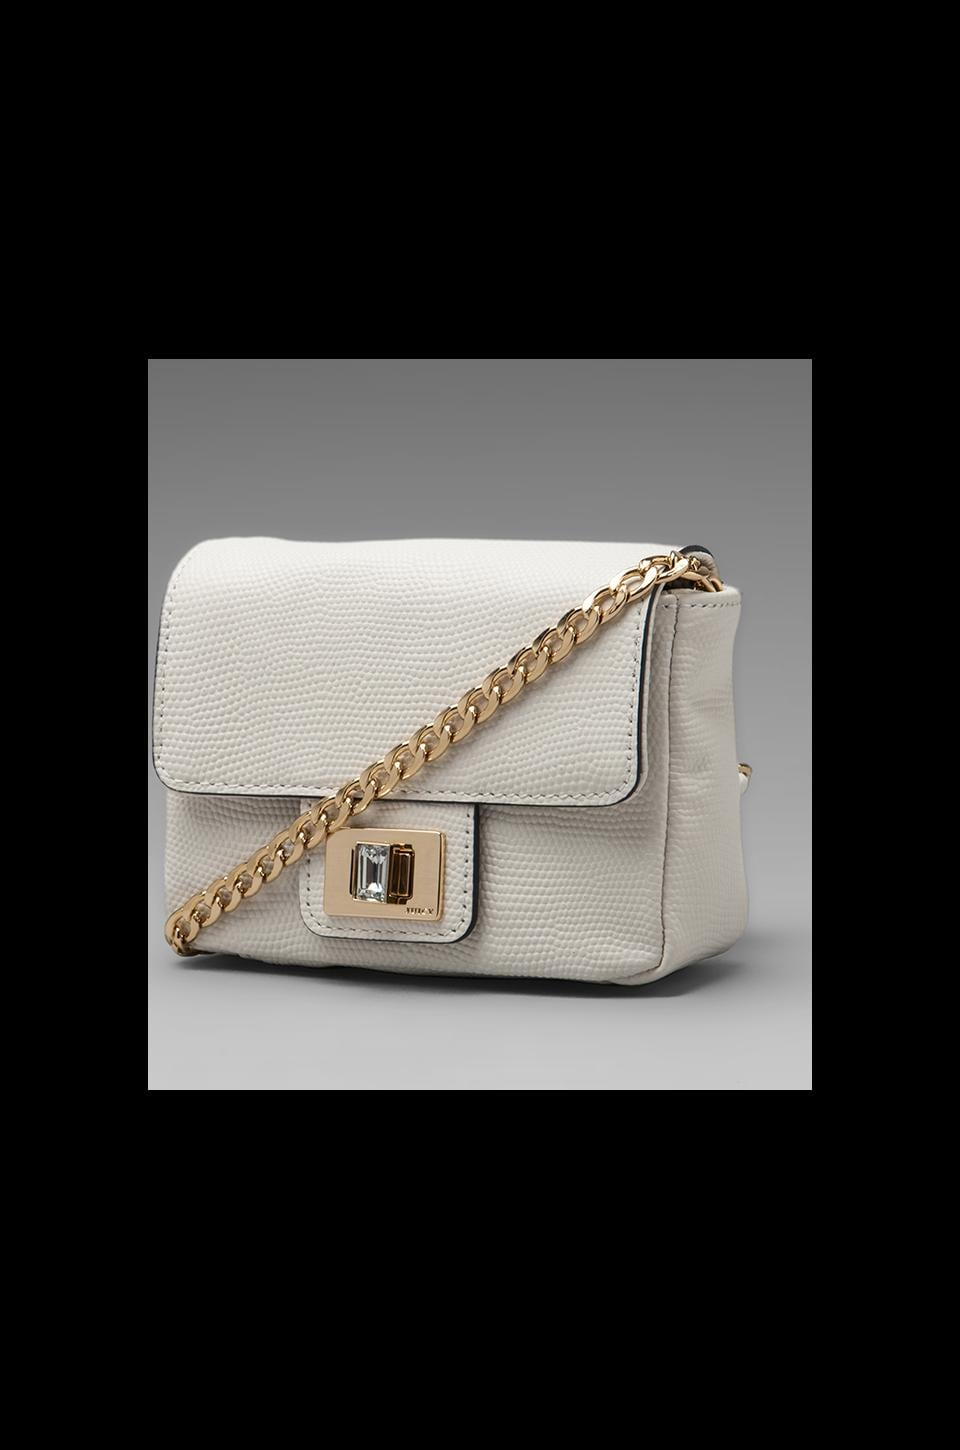 Juicy Couture Emblazon Leather Mini G in Optic White